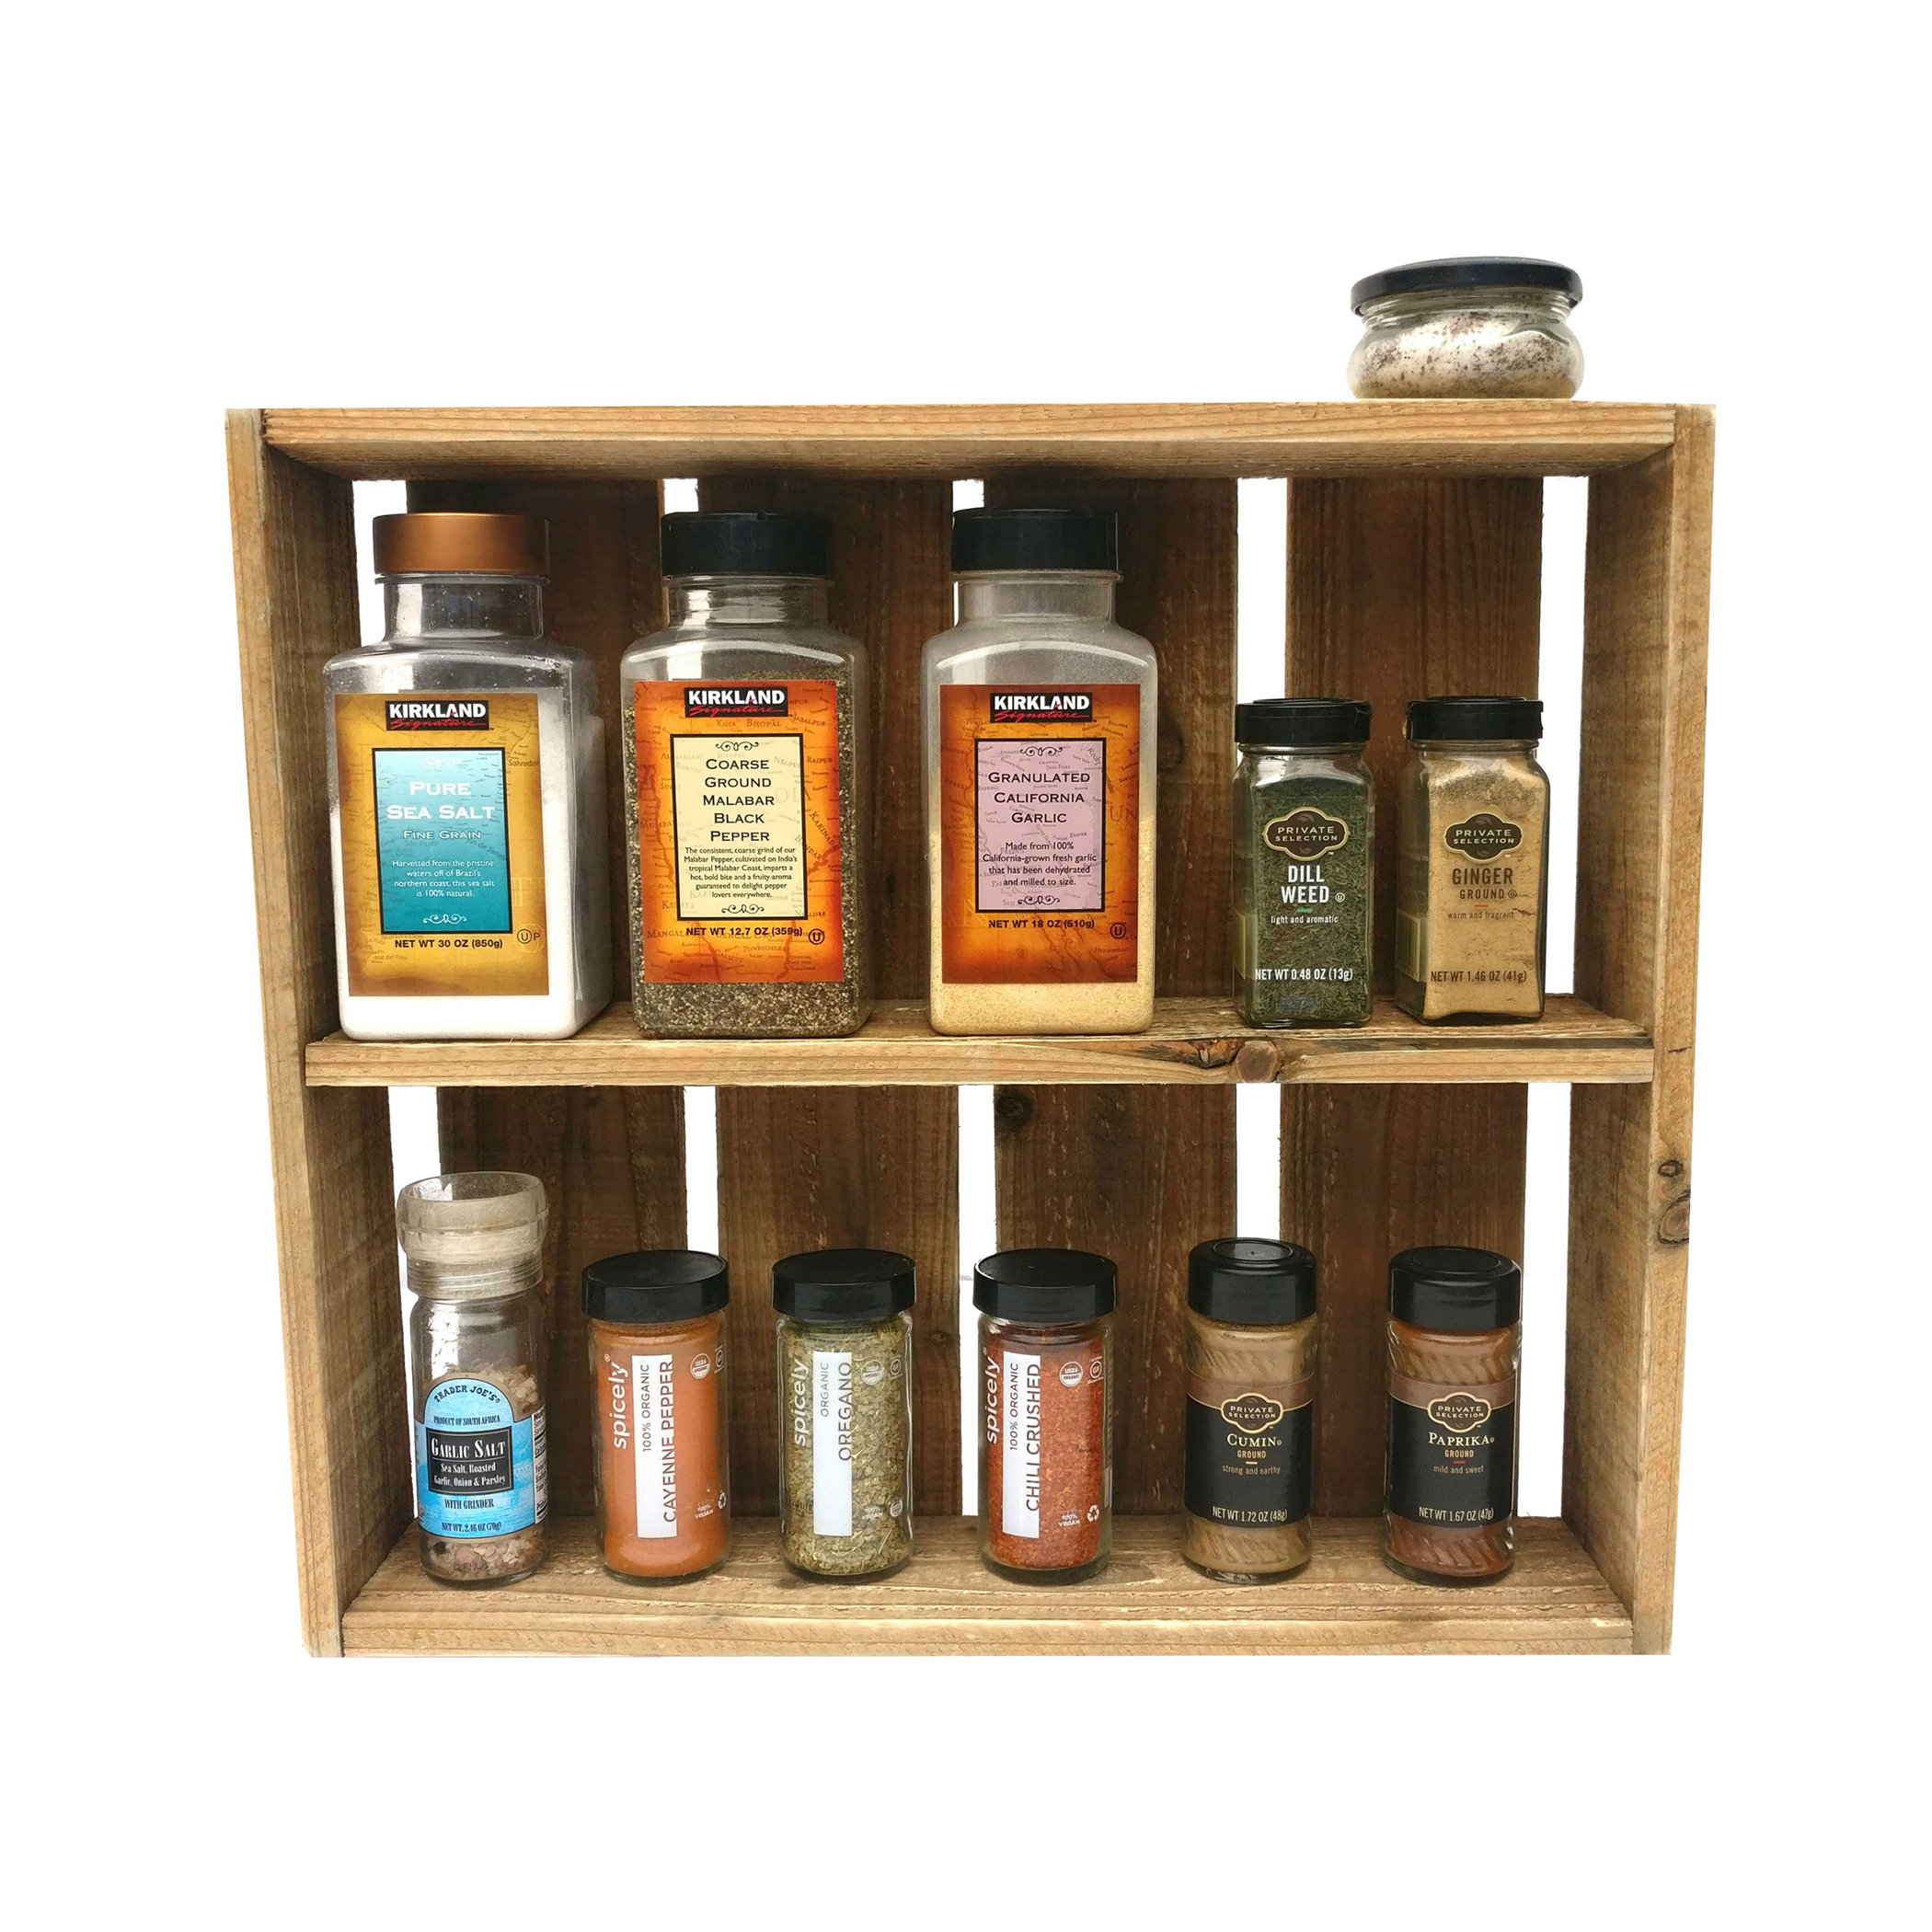 Woodworking Plans For Kitchen Spice Rack: Reclaimed Wood Spice Rack Box Countertop Decor Hanging